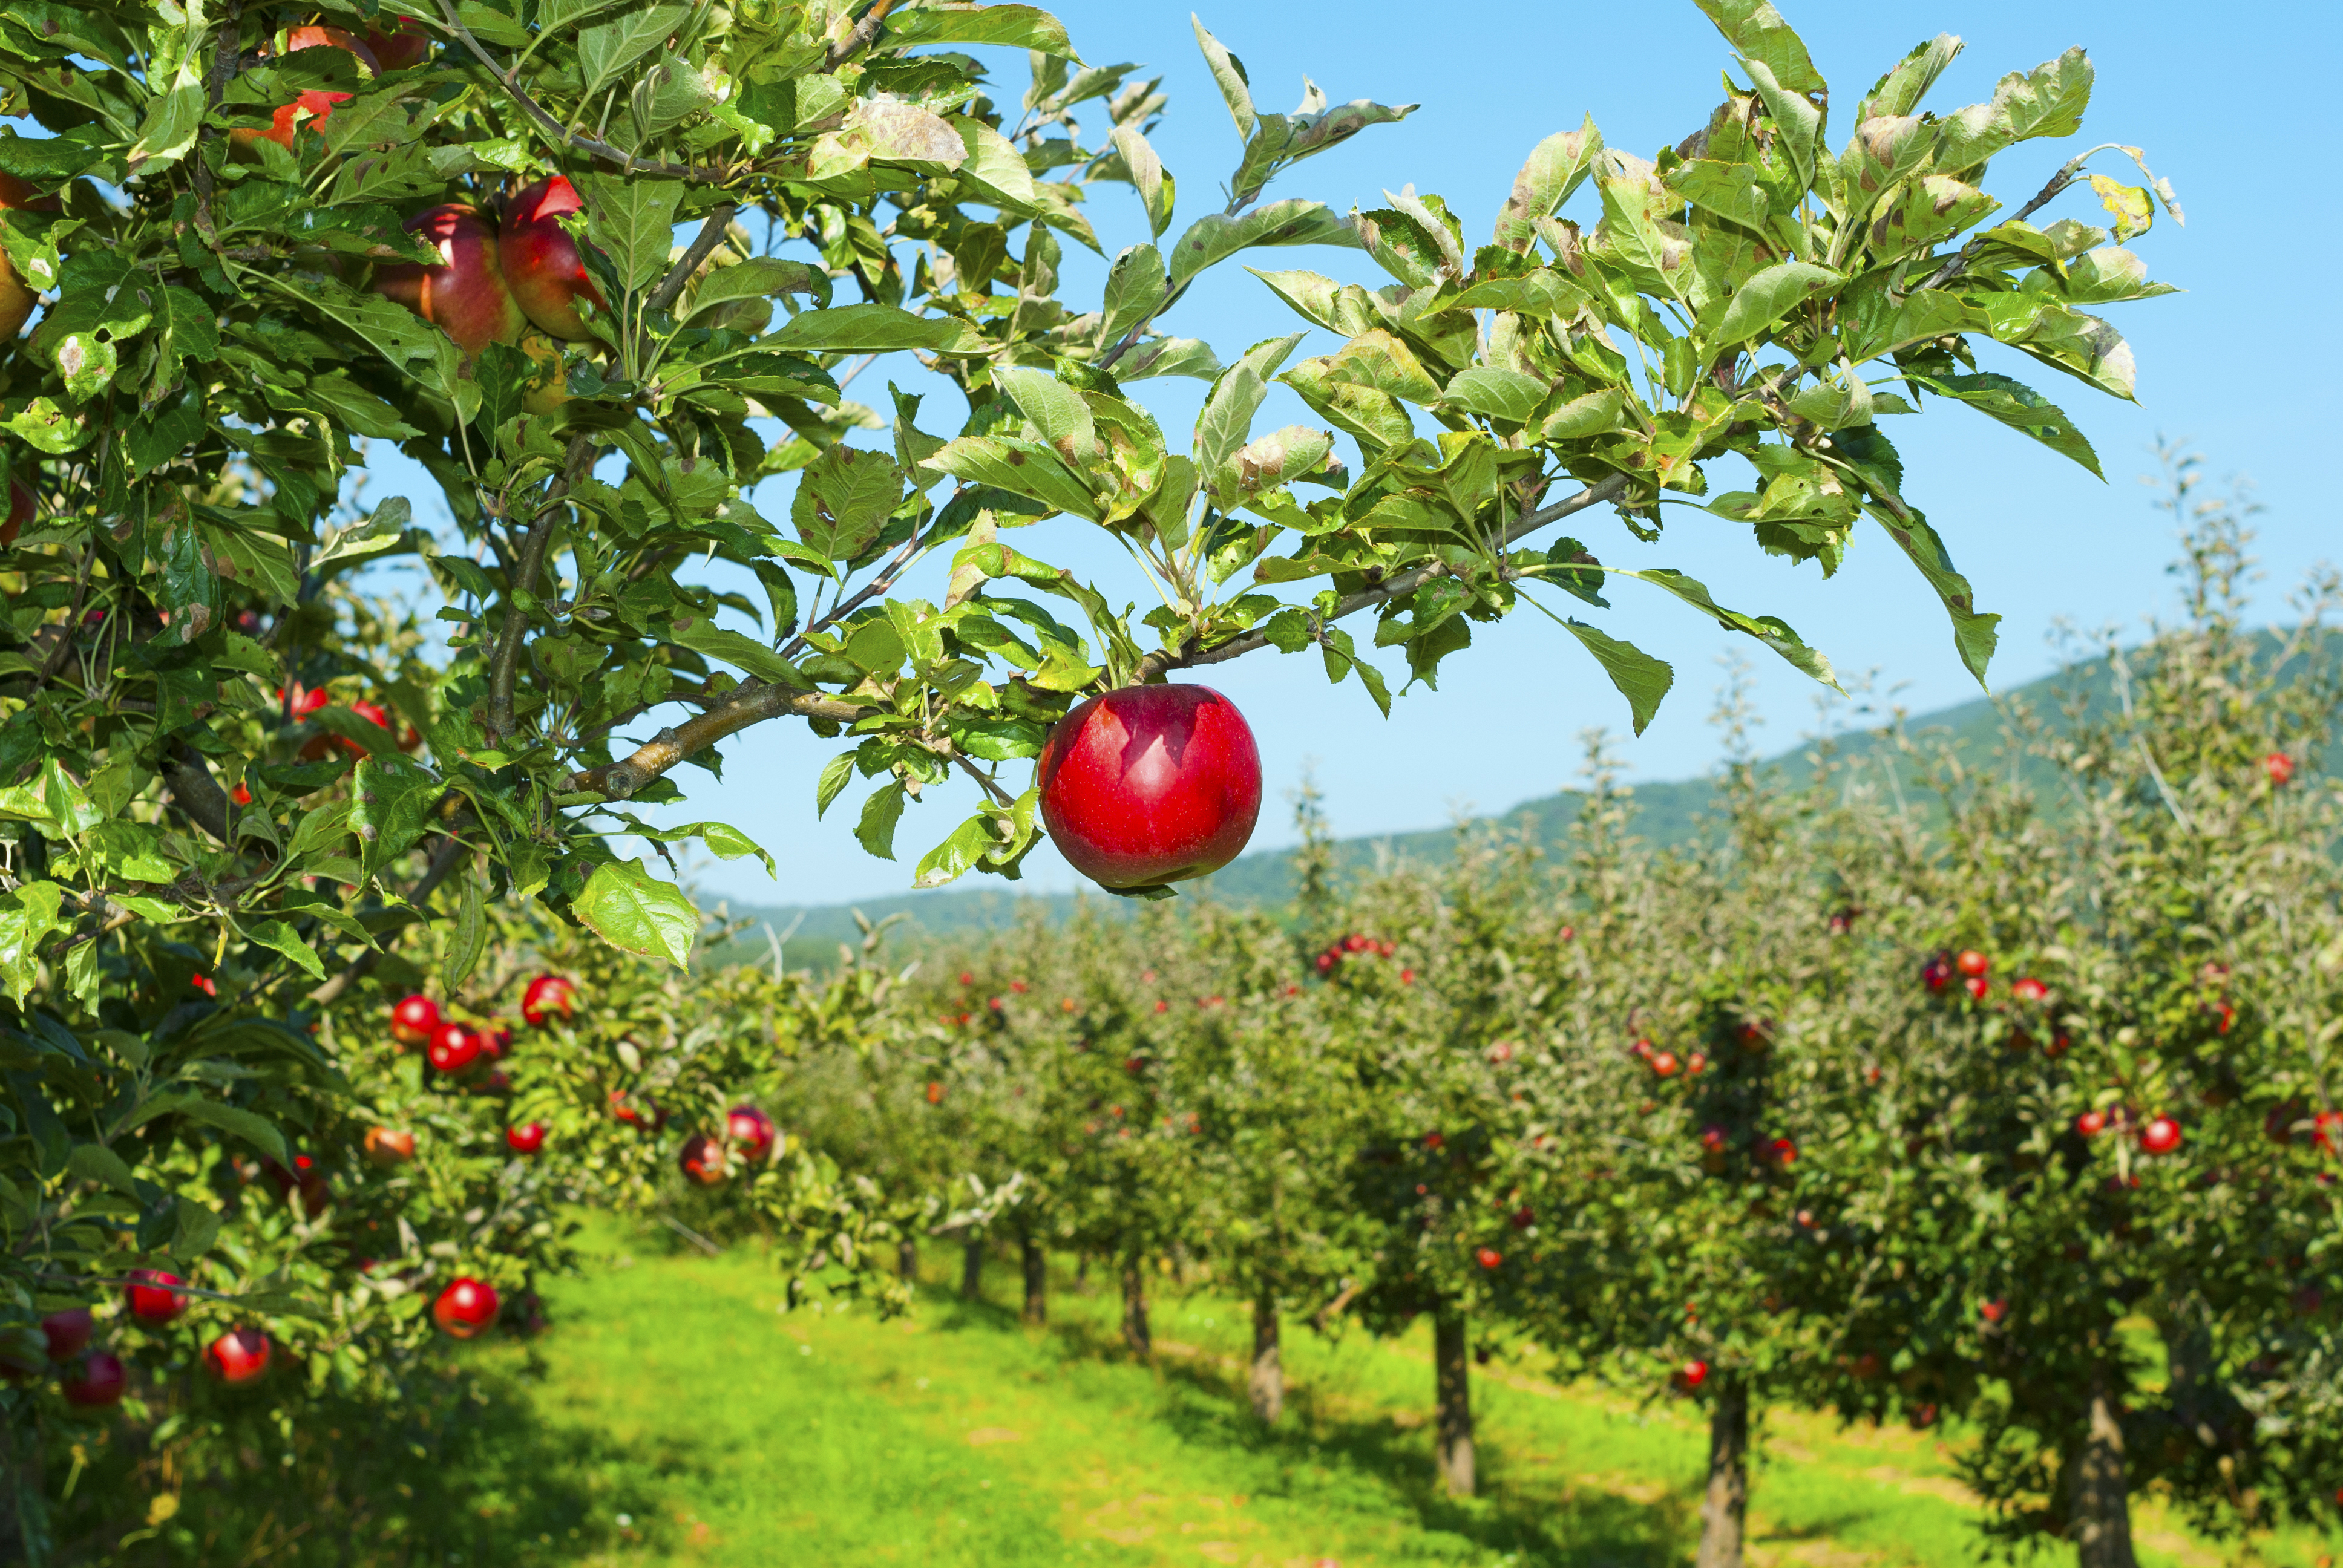 Apples are the second most-valuable fruit grown in the United States.